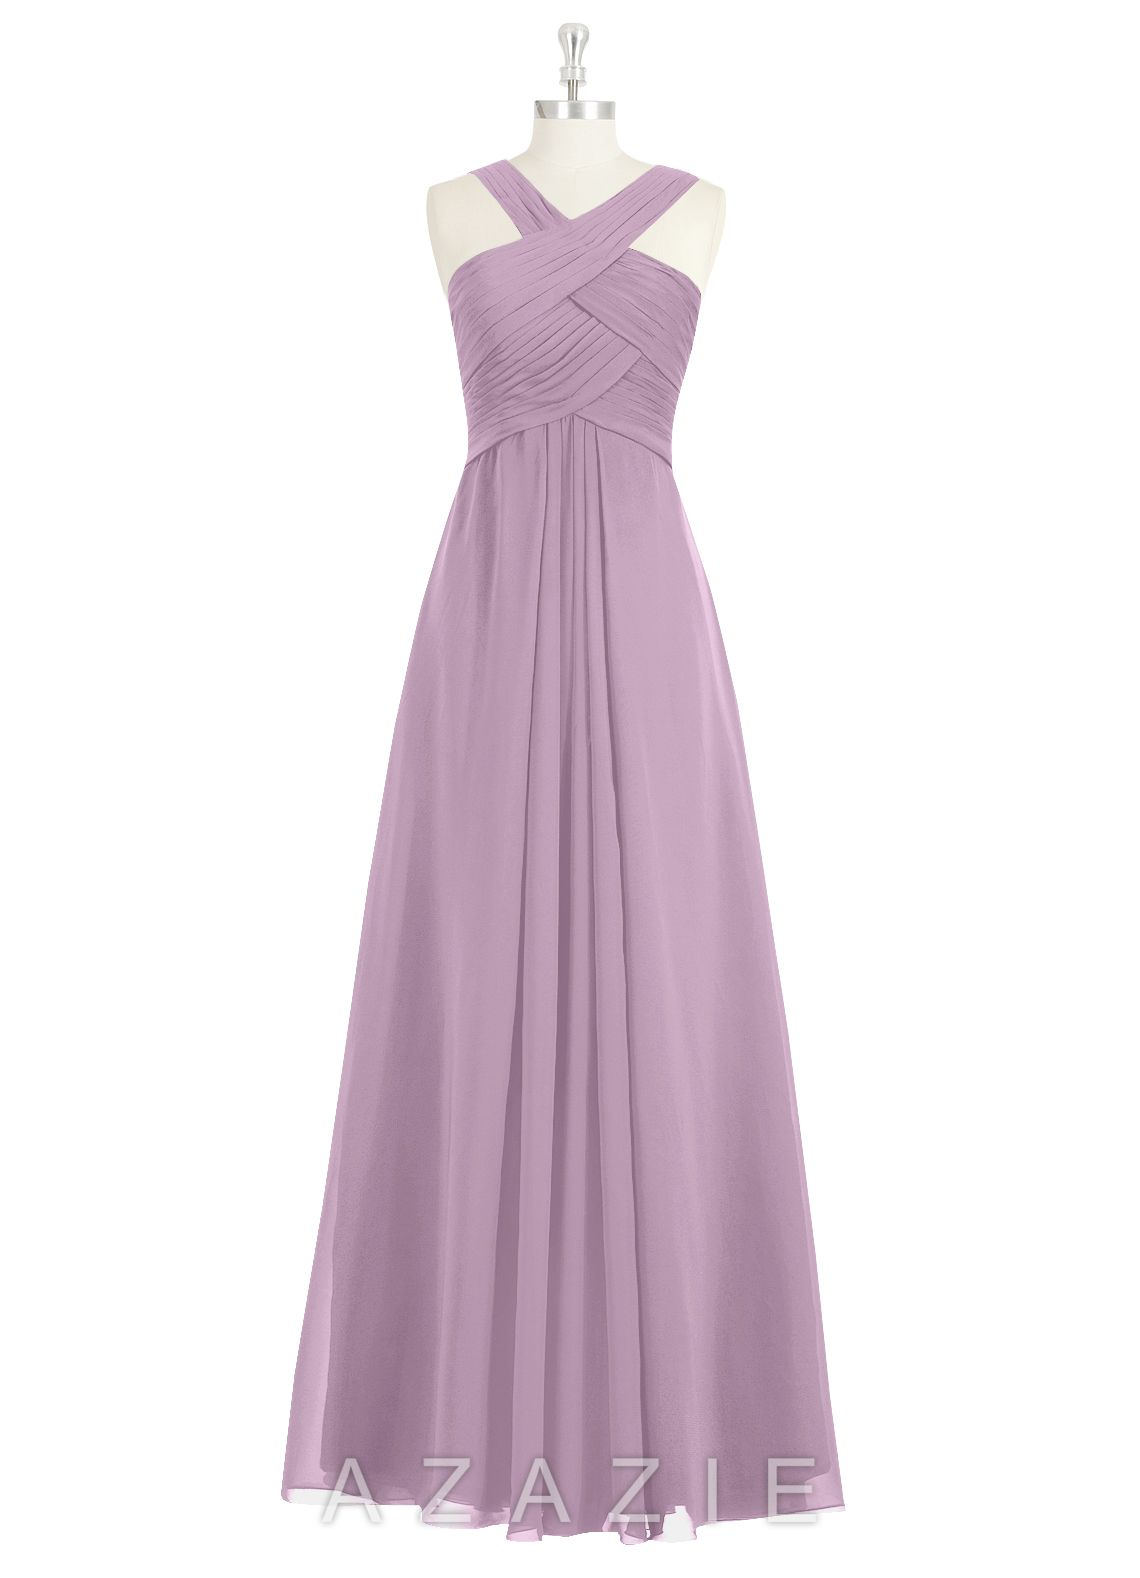 Kaleigh bridesmaid dress bridal parties wedding and weddings kaleigh bridesmaid dress ombrellifo Gallery